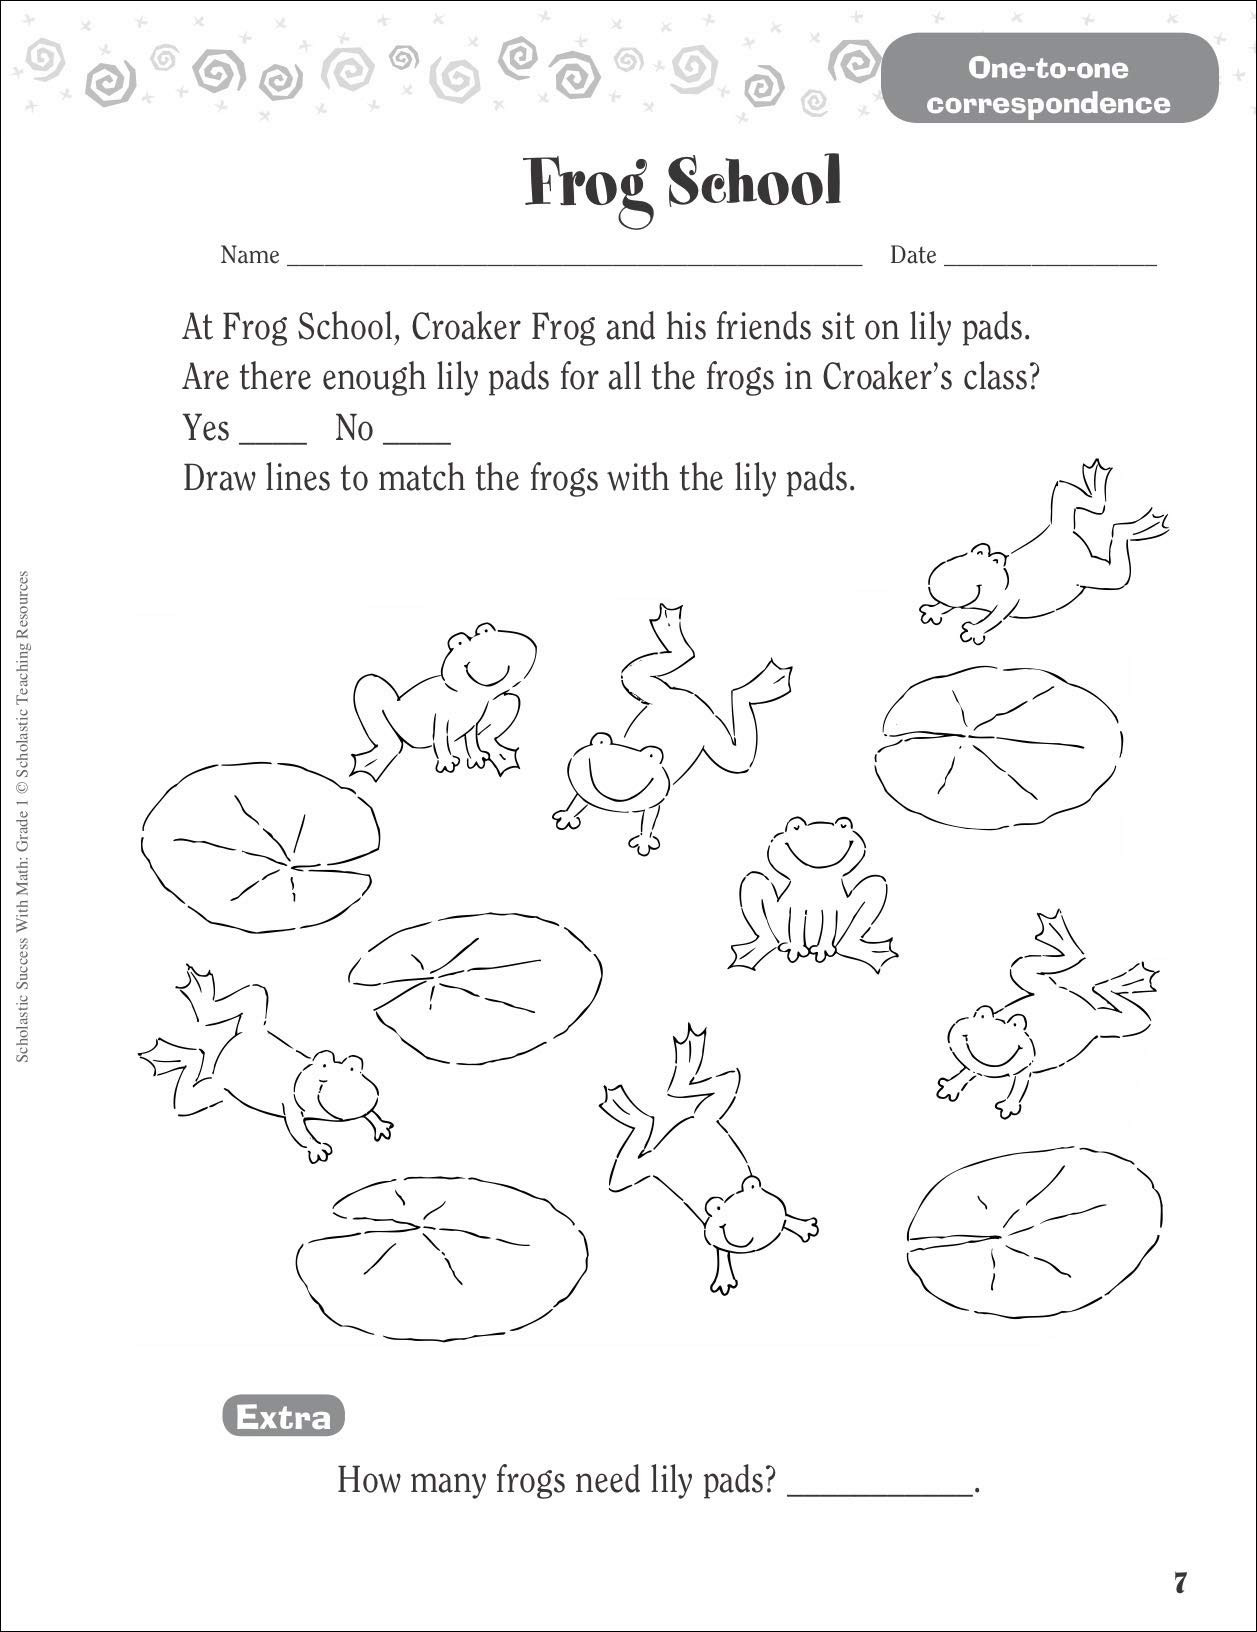 hight resolution of 5 Free Math Worksheets Second Grade 2 Skip Counting Skip Counting by 10  From 10 - apocalomegaproductions.com